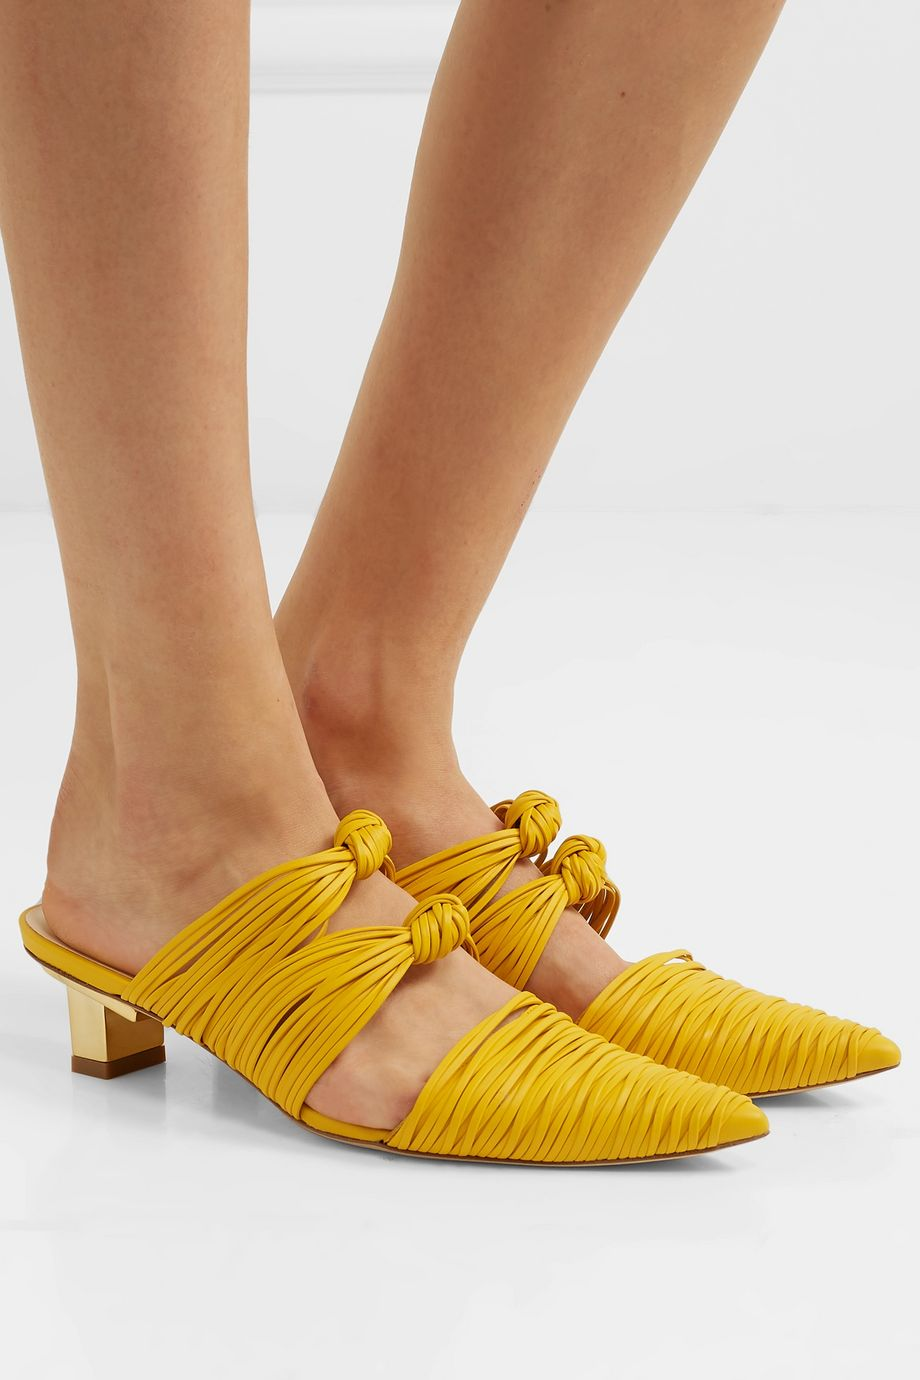 Cult Gaia Paige knotted leather mules